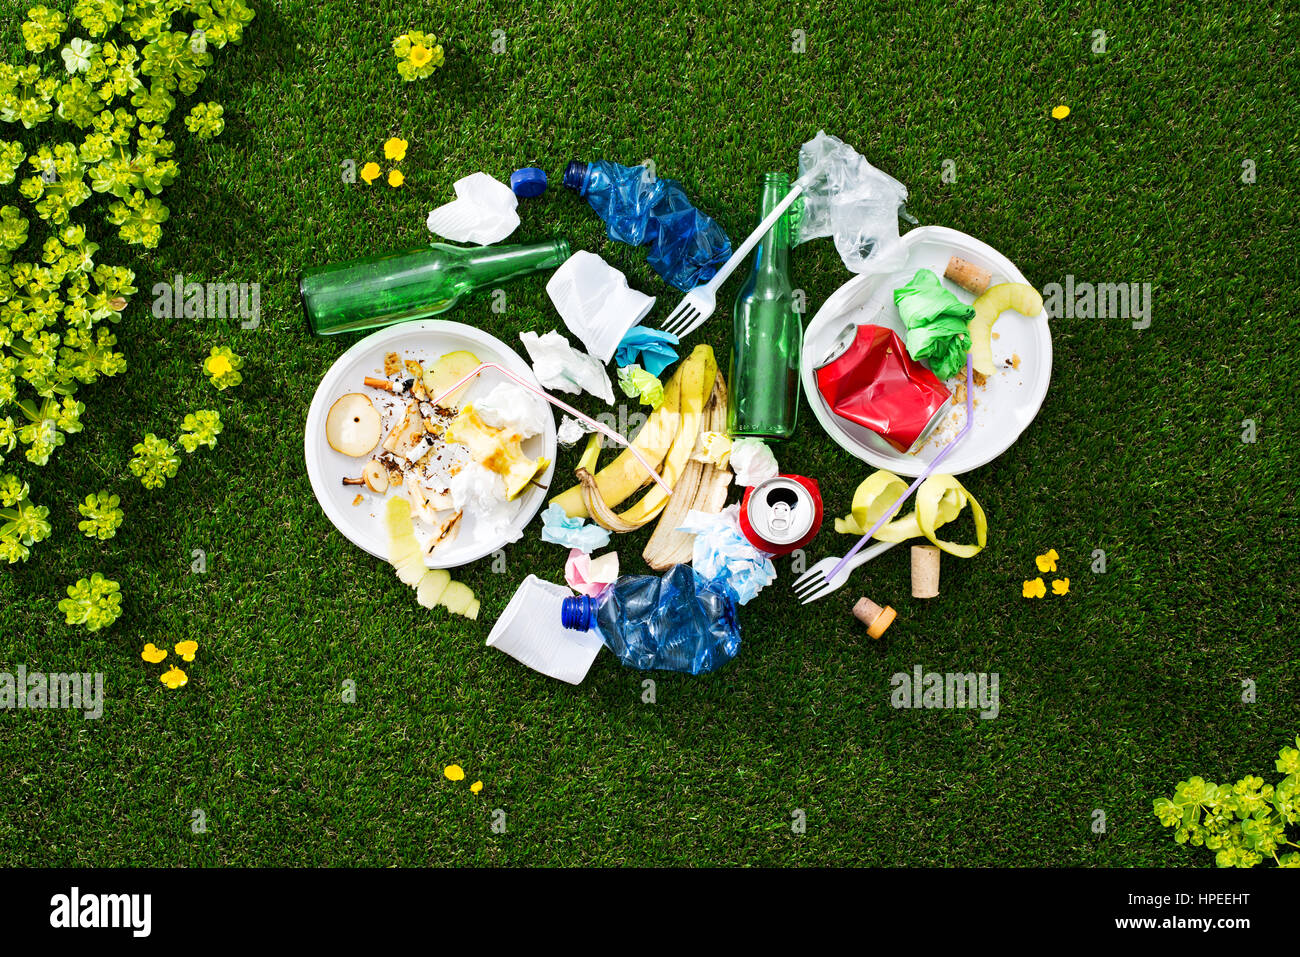 Load of mixed rubbish left on the grass after a picnic, environmental care and waste concept - Stock Image